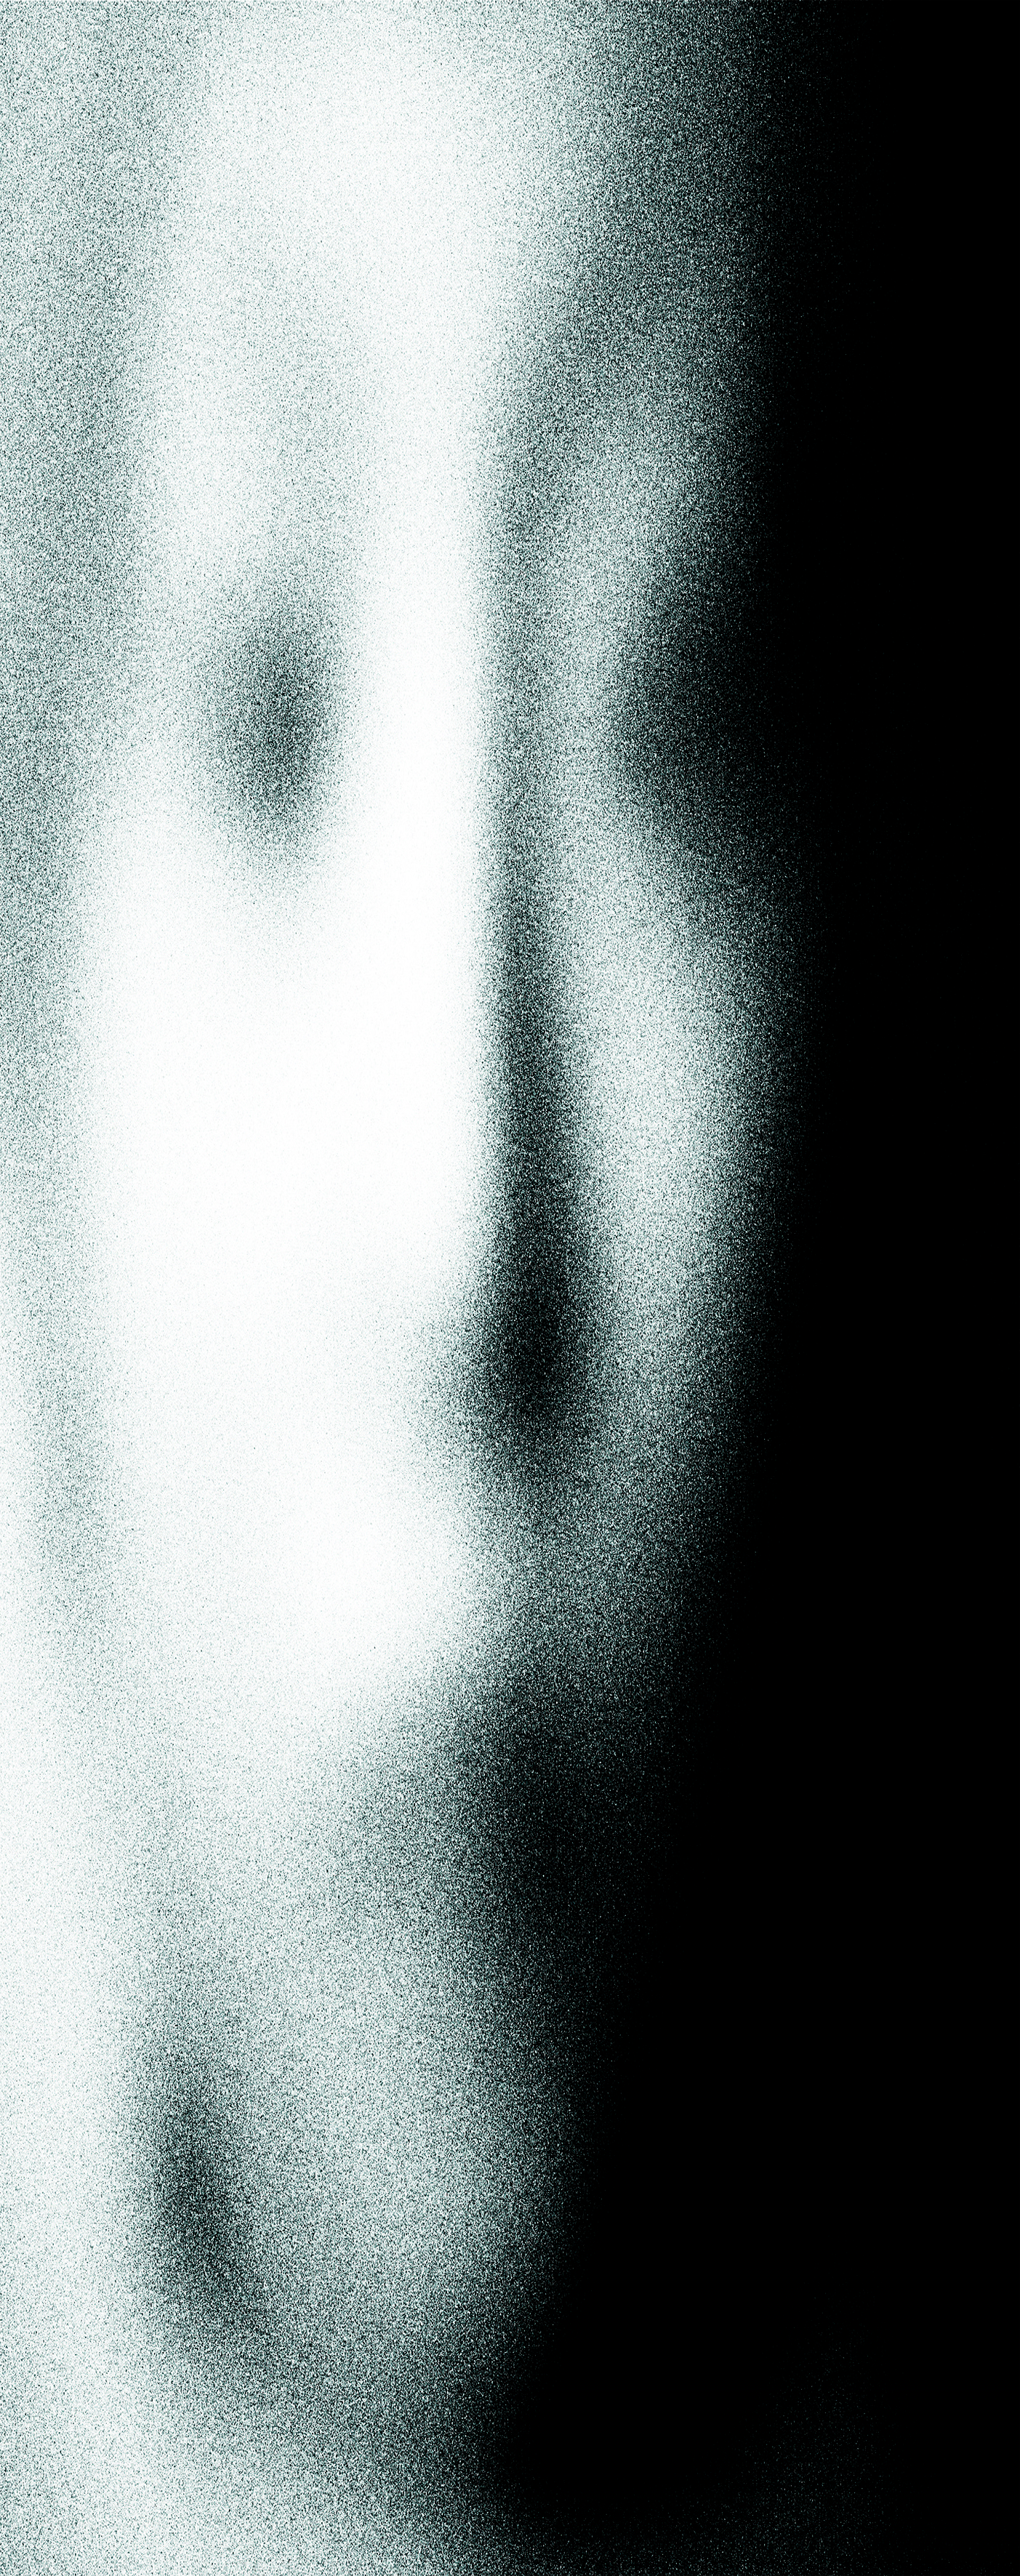 Charcoal drawing digitally stretched, intentionally distorted and printed onto paper in preparation for a new light drawing